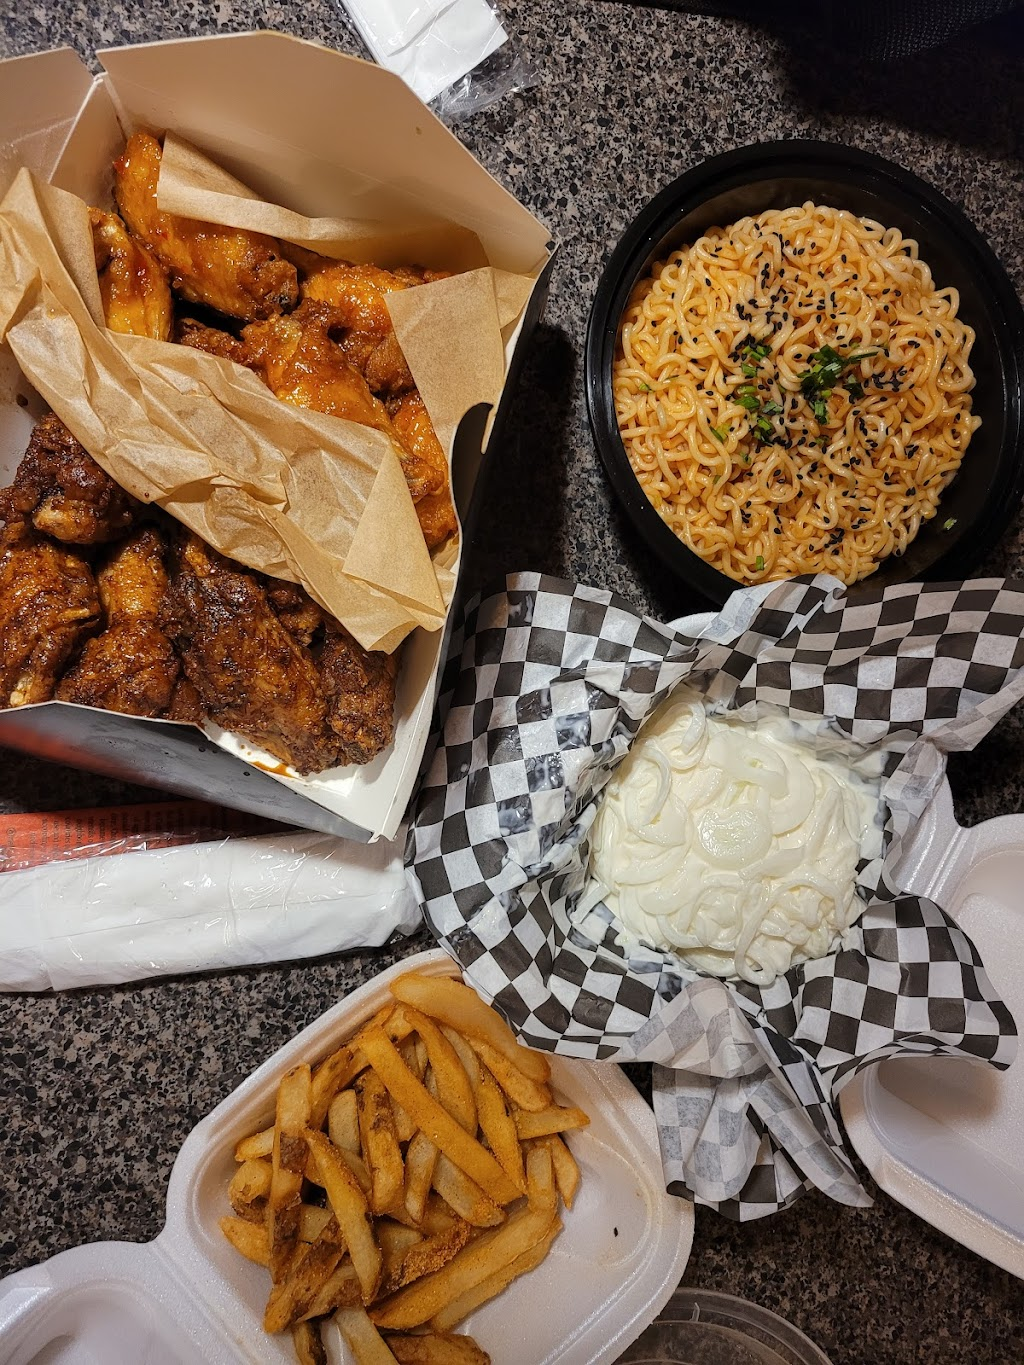 MUKBANG CHICKEN | meal takeaway | 4638 N Cumberland Ave, Chicago, IL 60656, USA | 7738875827 OR +1 773-887-5827